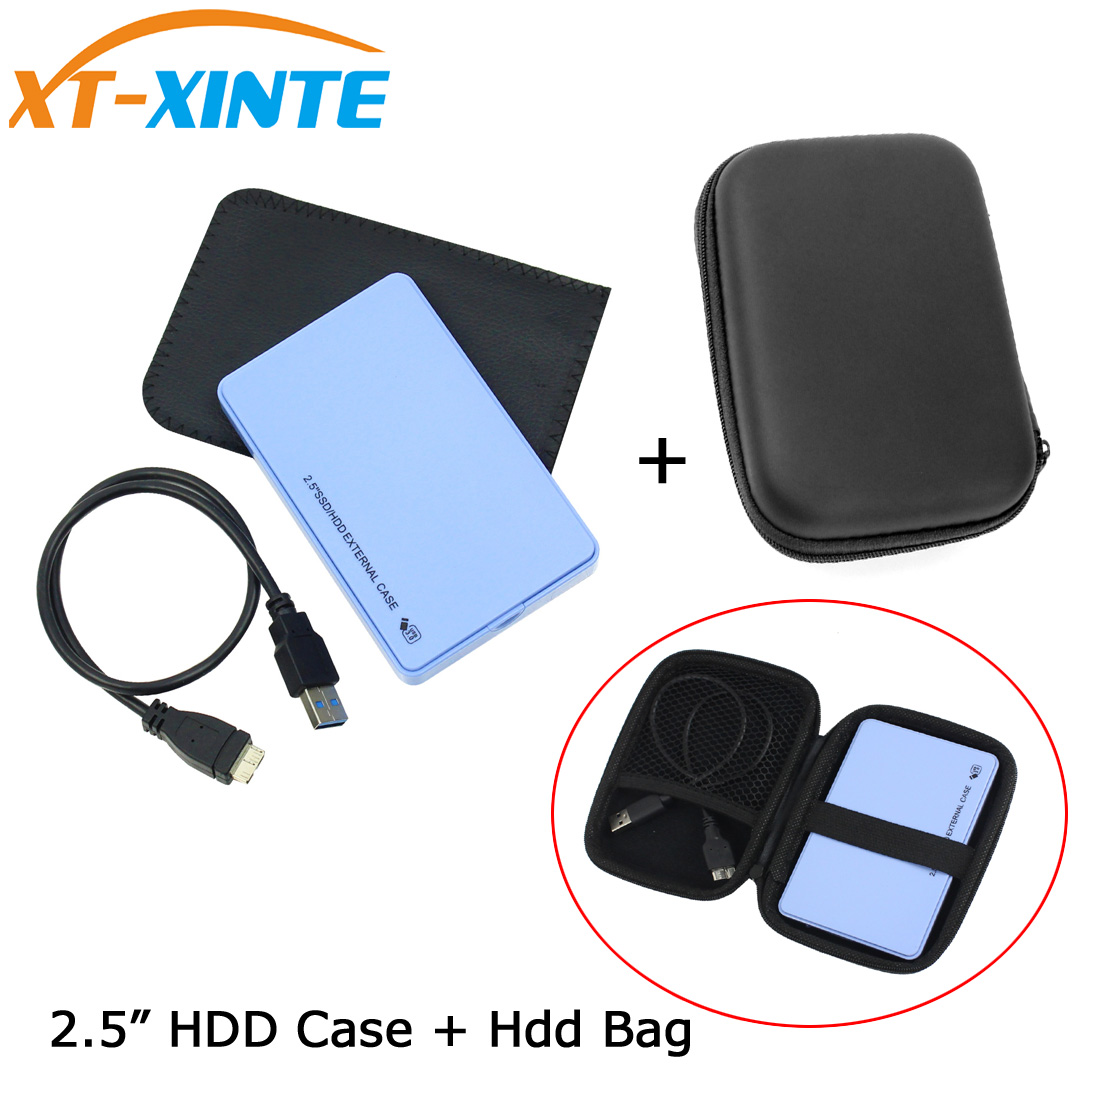 """1 Set 2.5"""" SATA to USB 3.0 HDD SSD Hard Disk Enclosure External Case with Organizer Storage Bag 5Gbps Data Transfer Backup Tool"""